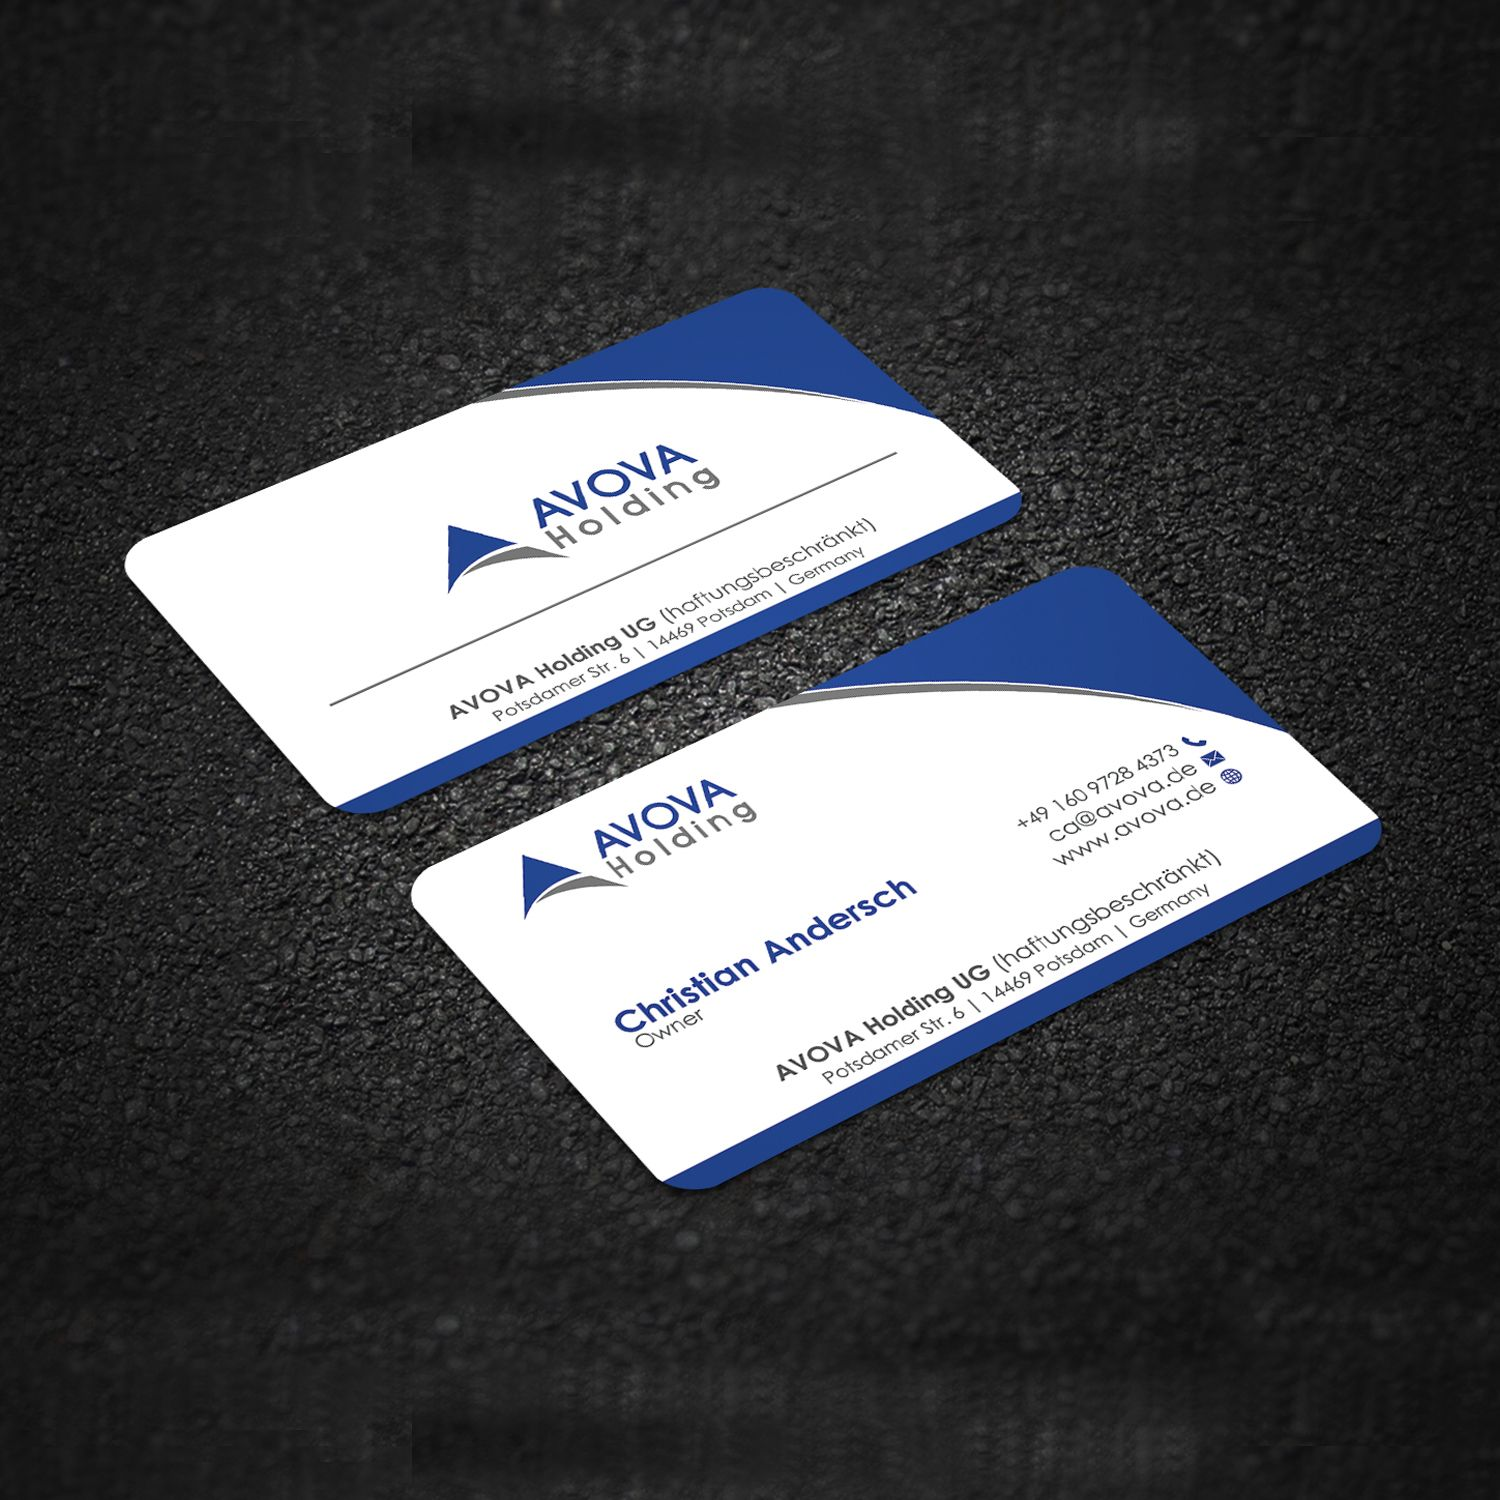 Business Card Design Holding Business Card Business Card Design Custom Business Cards Card Design